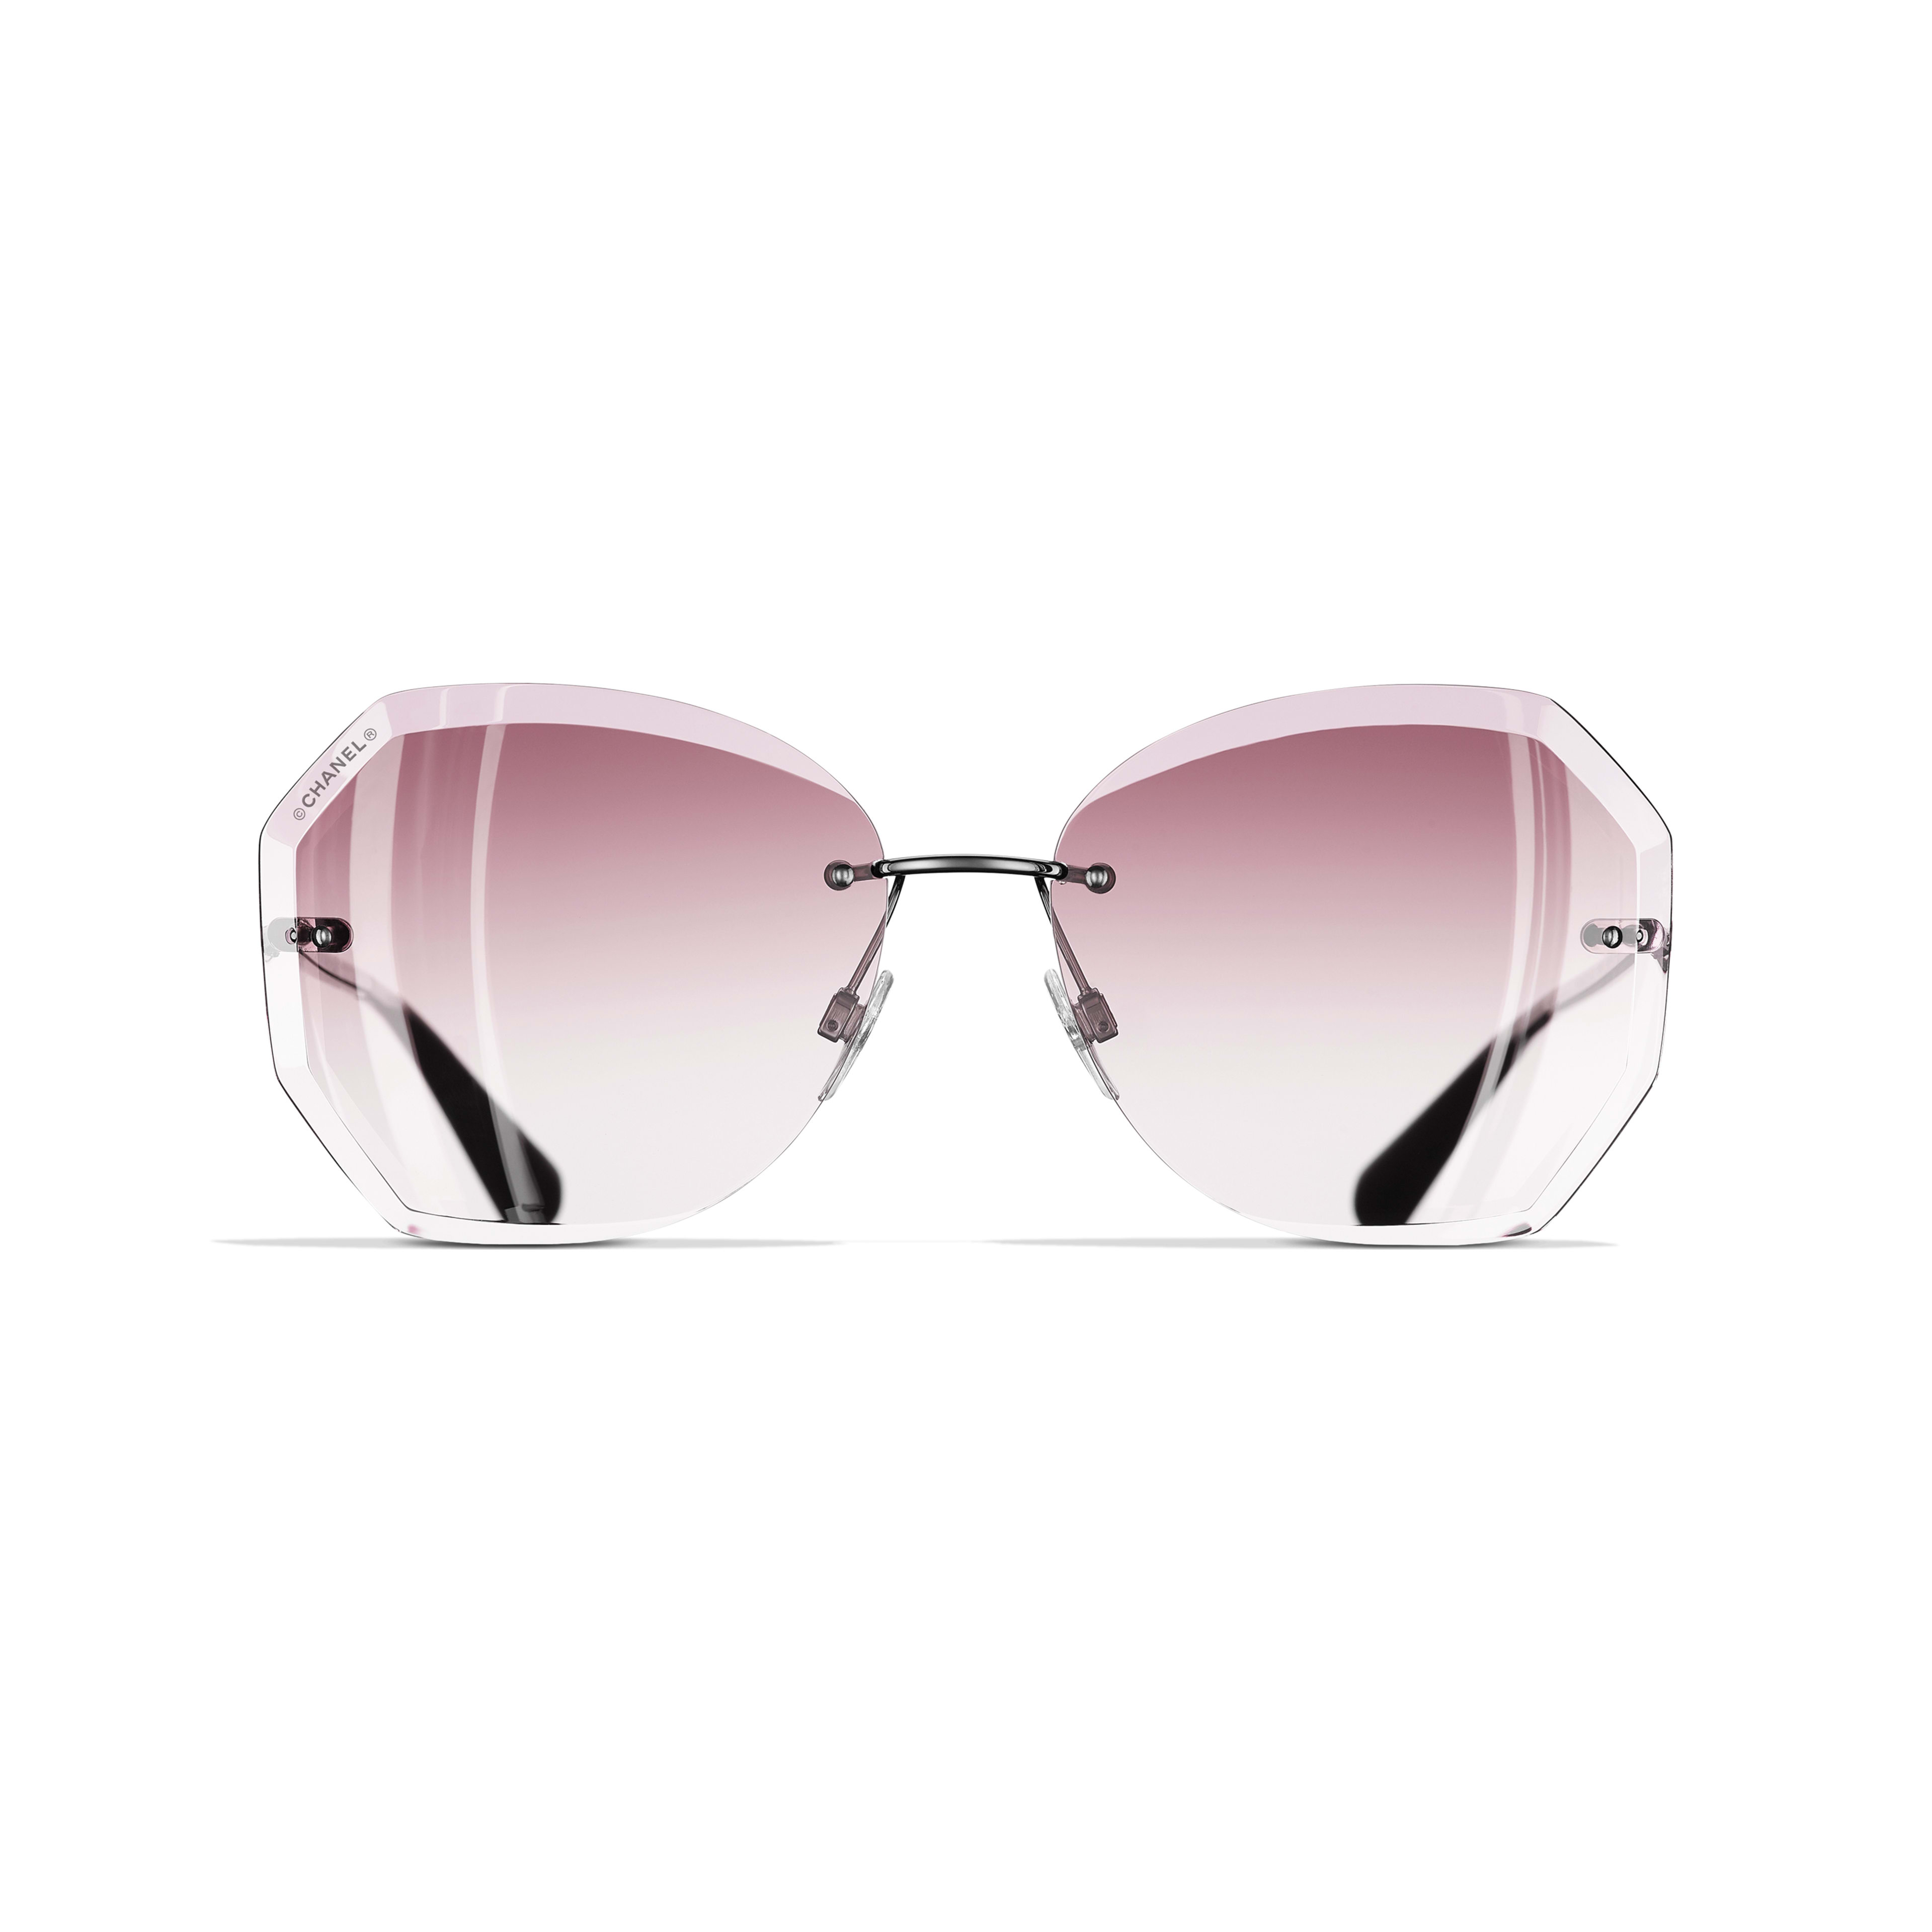 Round Sunglasses - Silver & Pink - Metal - Alternative view - see full sized version